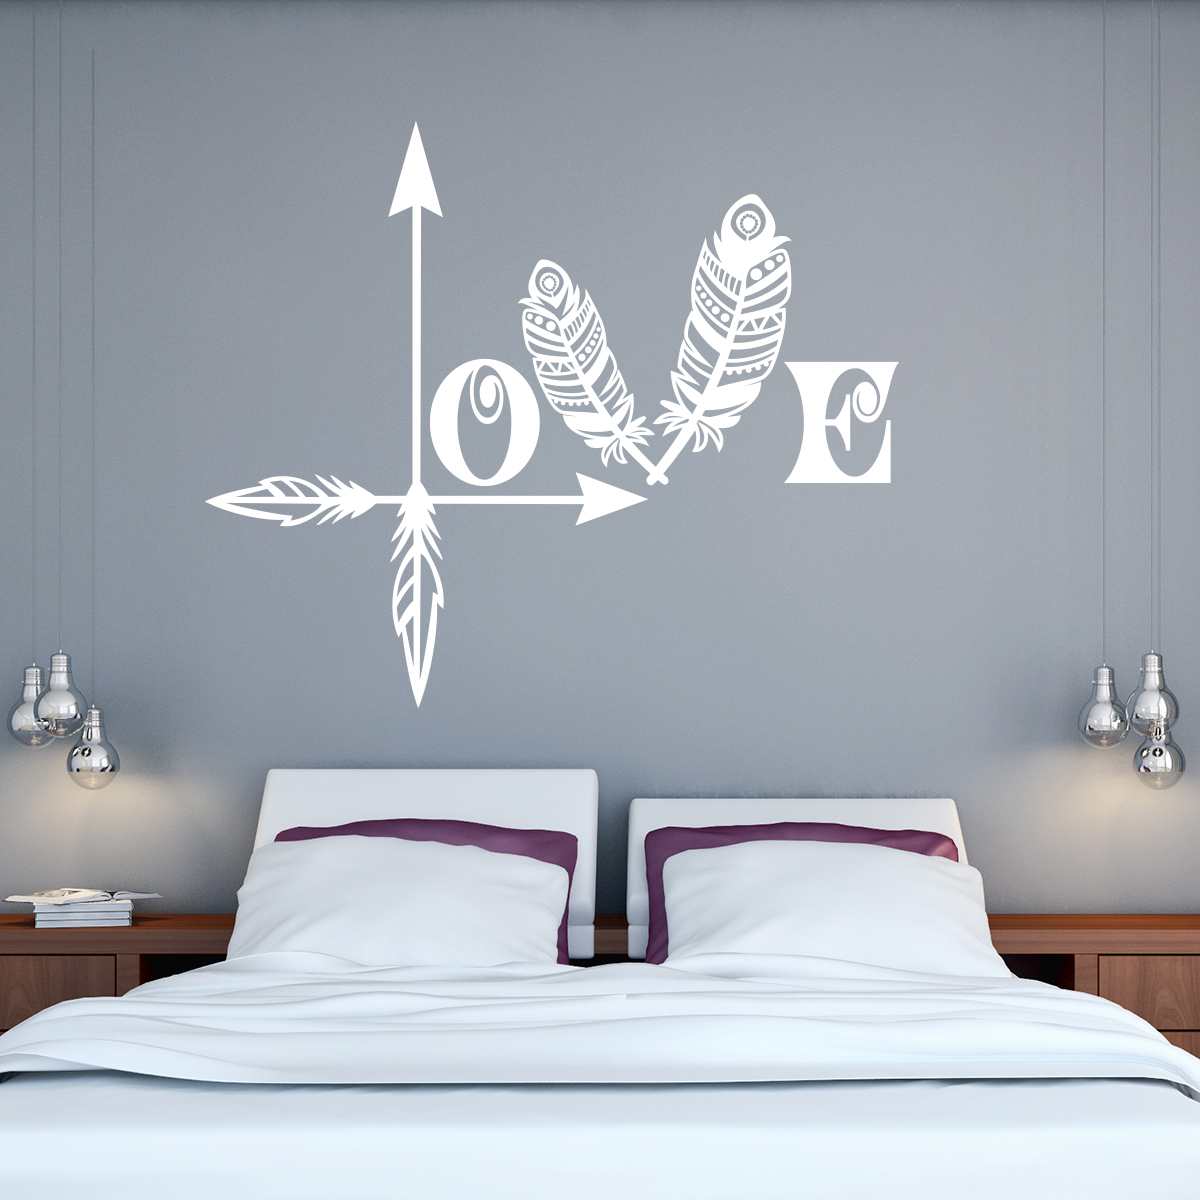 sticker citation love et plumes stickers citations anglais ambiance sticker. Black Bedroom Furniture Sets. Home Design Ideas